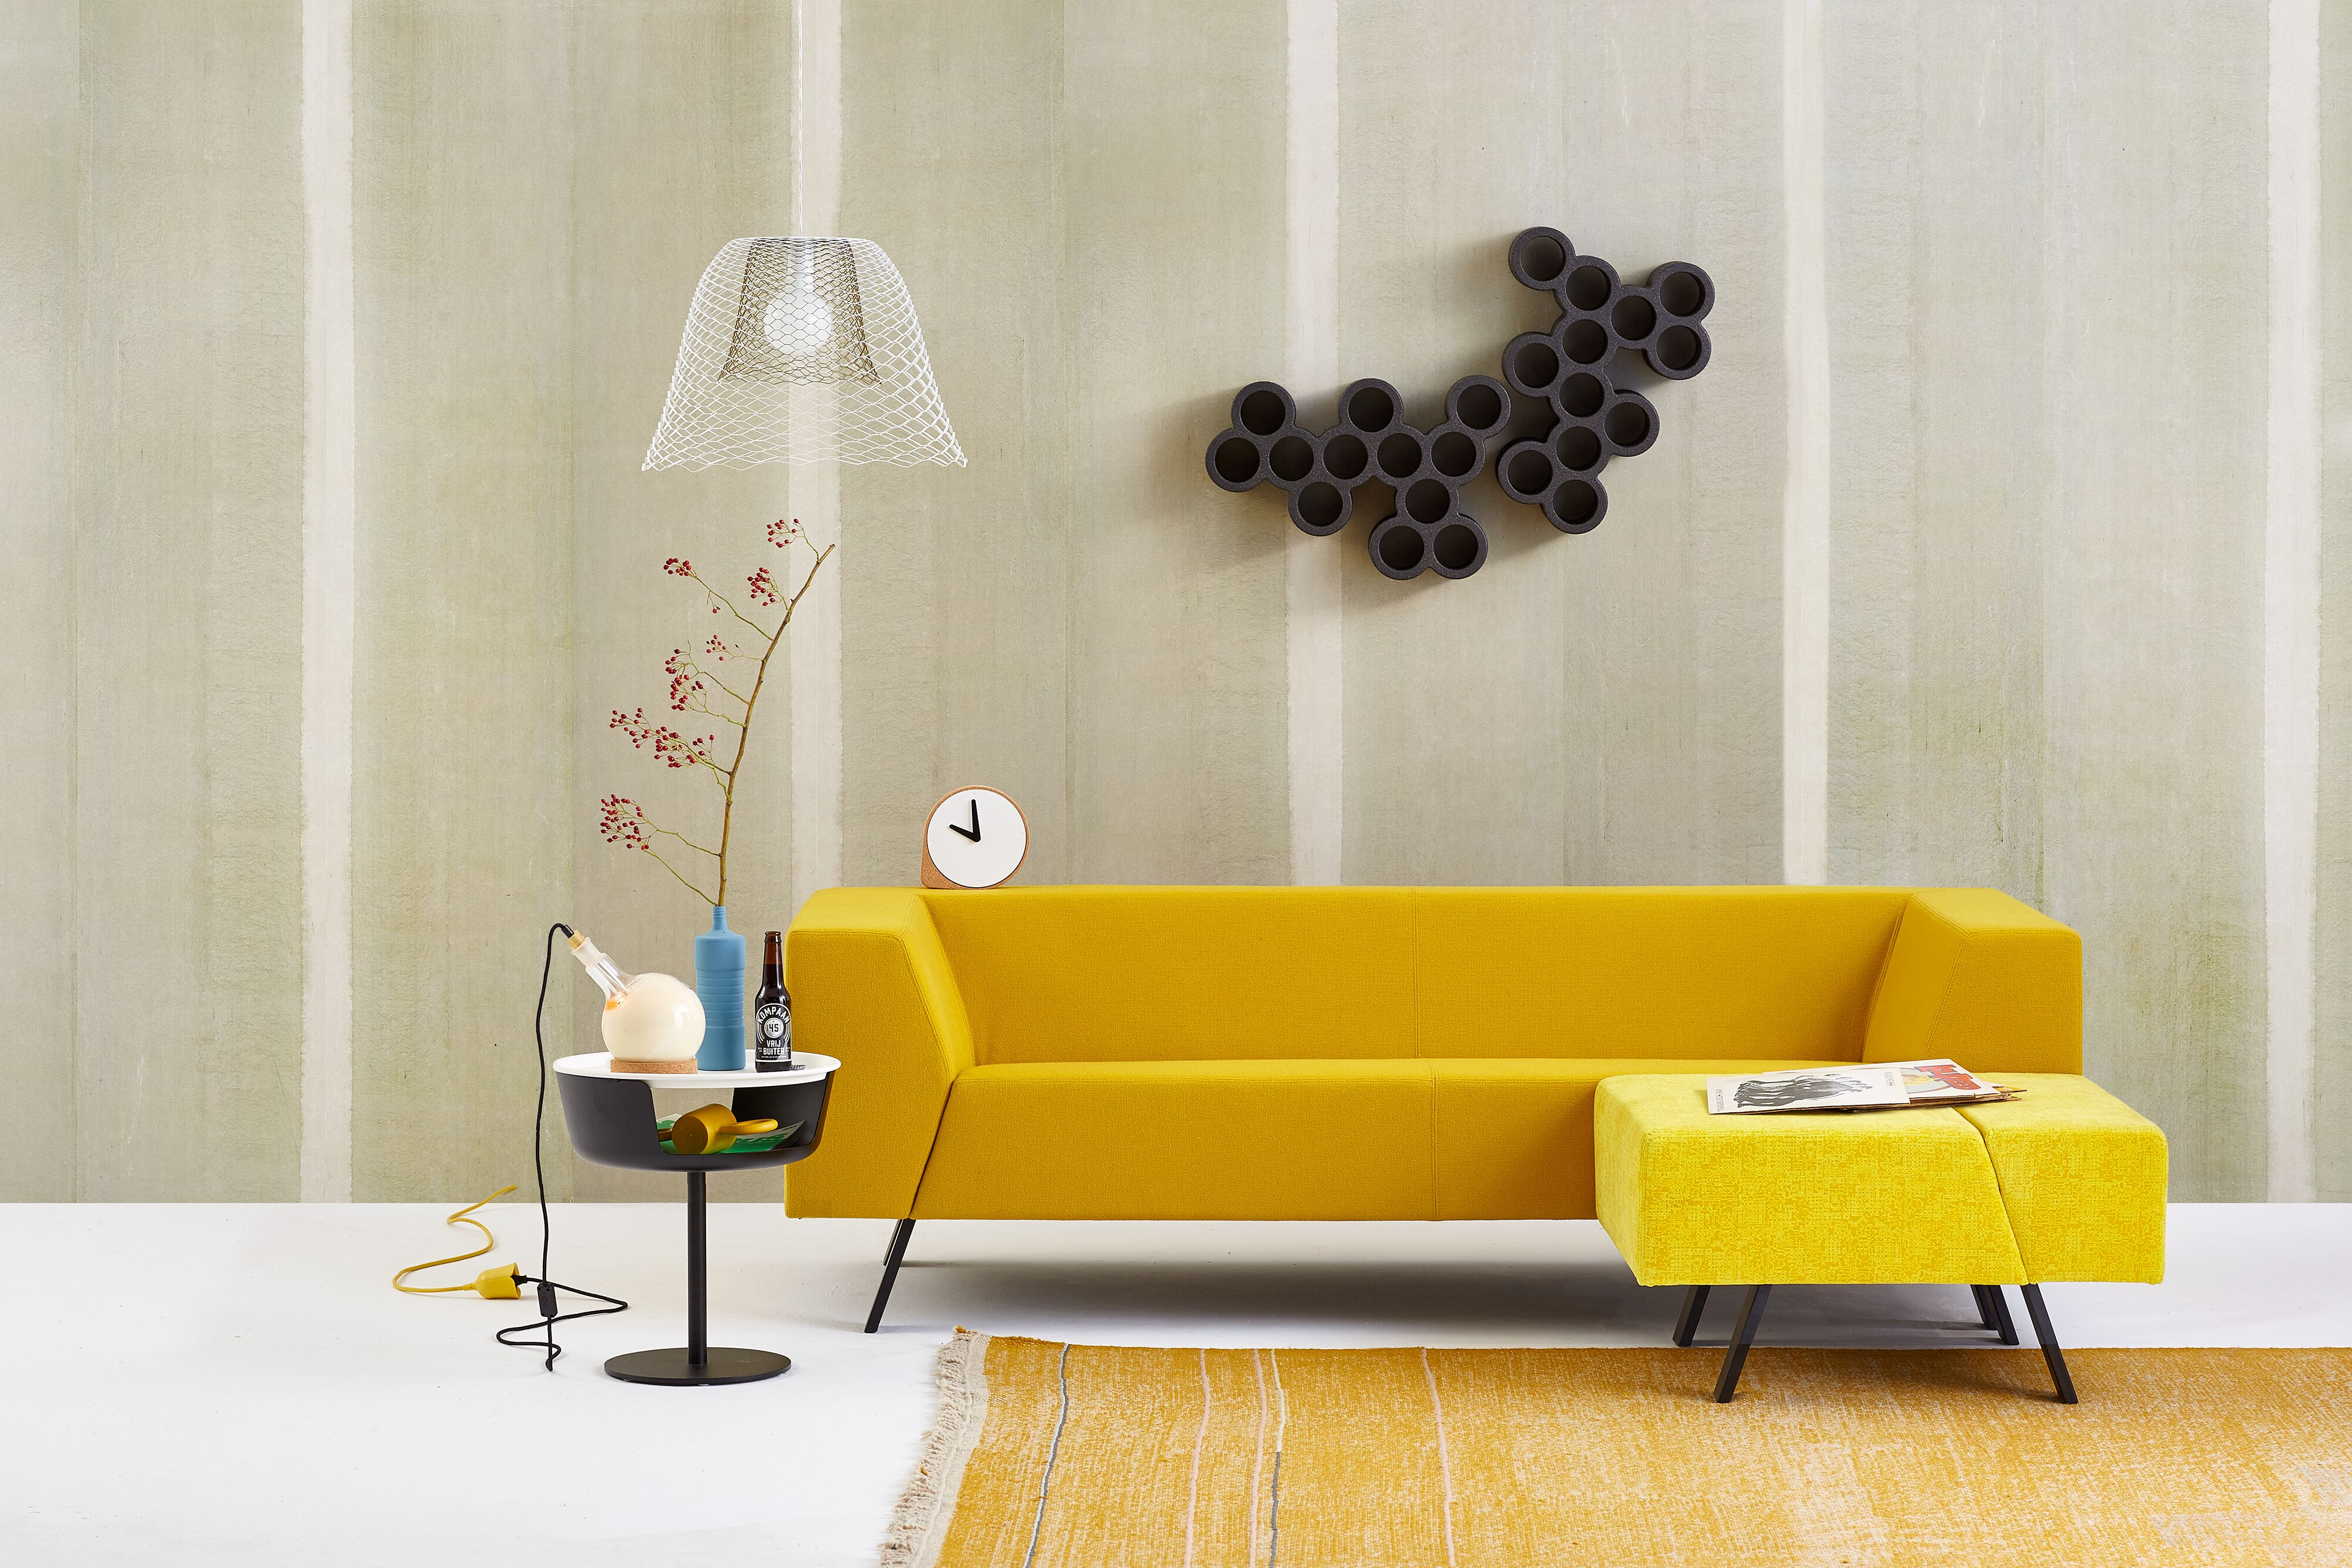 Gispen Sett sofa with yellow upholstery and Asy sidetable and dombo cup with Slingerlamp pendant lamp and carpet in front of light green background front view